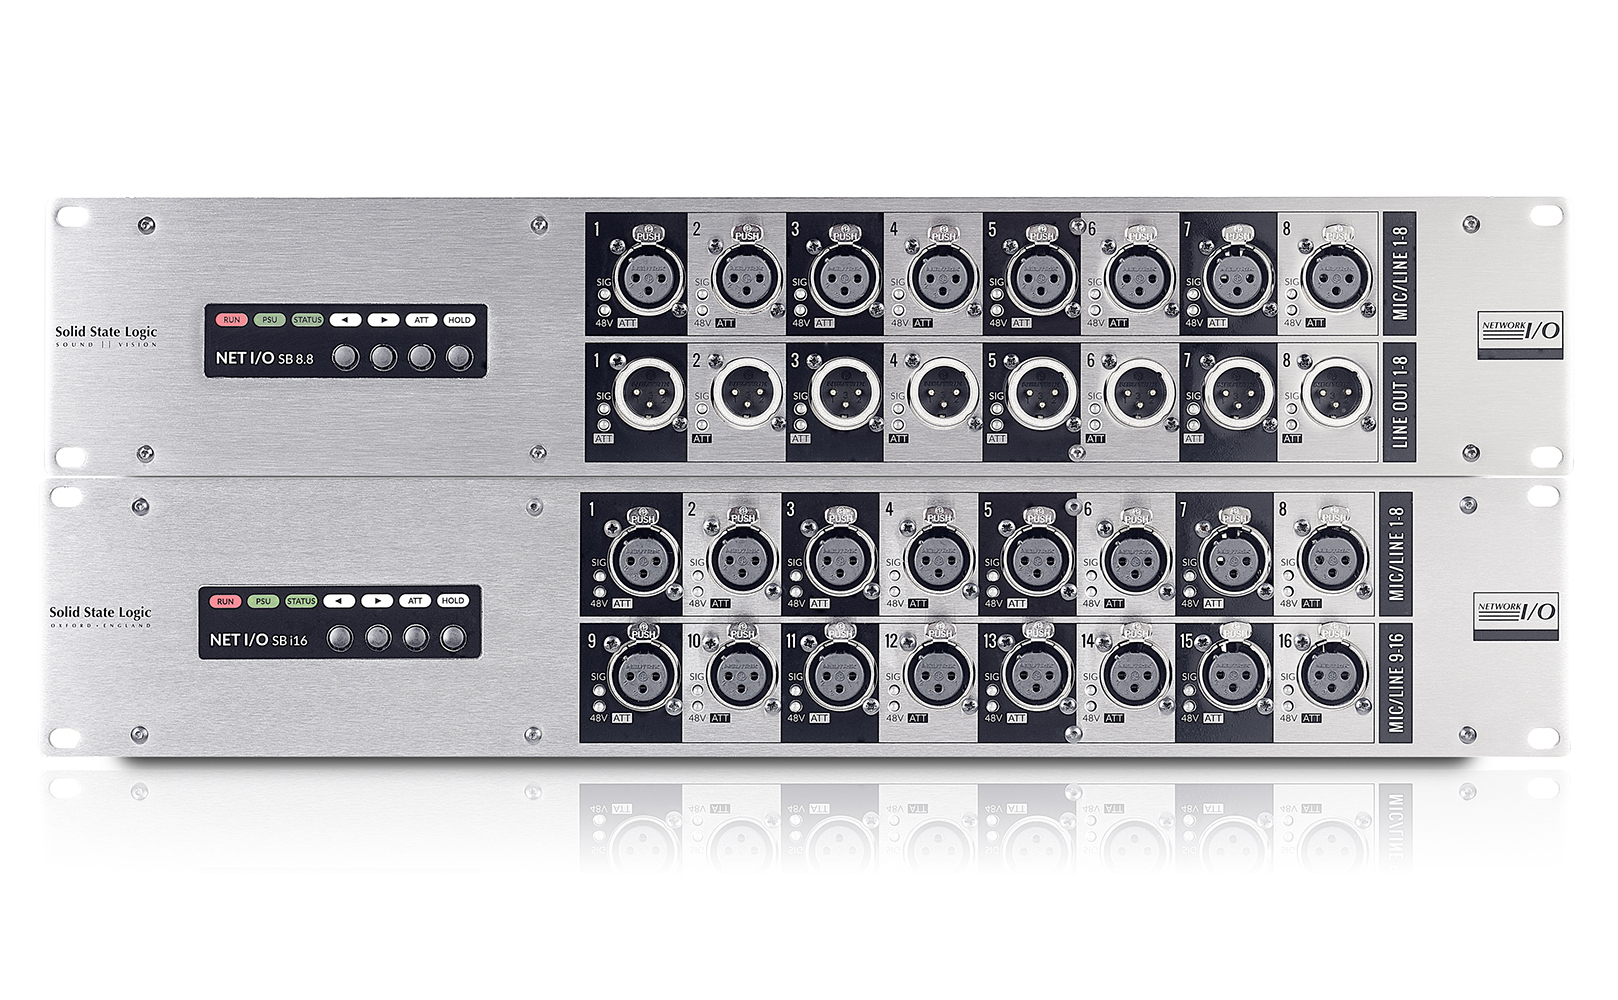 Network I O Solid State Logic Stereo Preamplifier With Adjustment Tone By Tca5550 Stageboxes